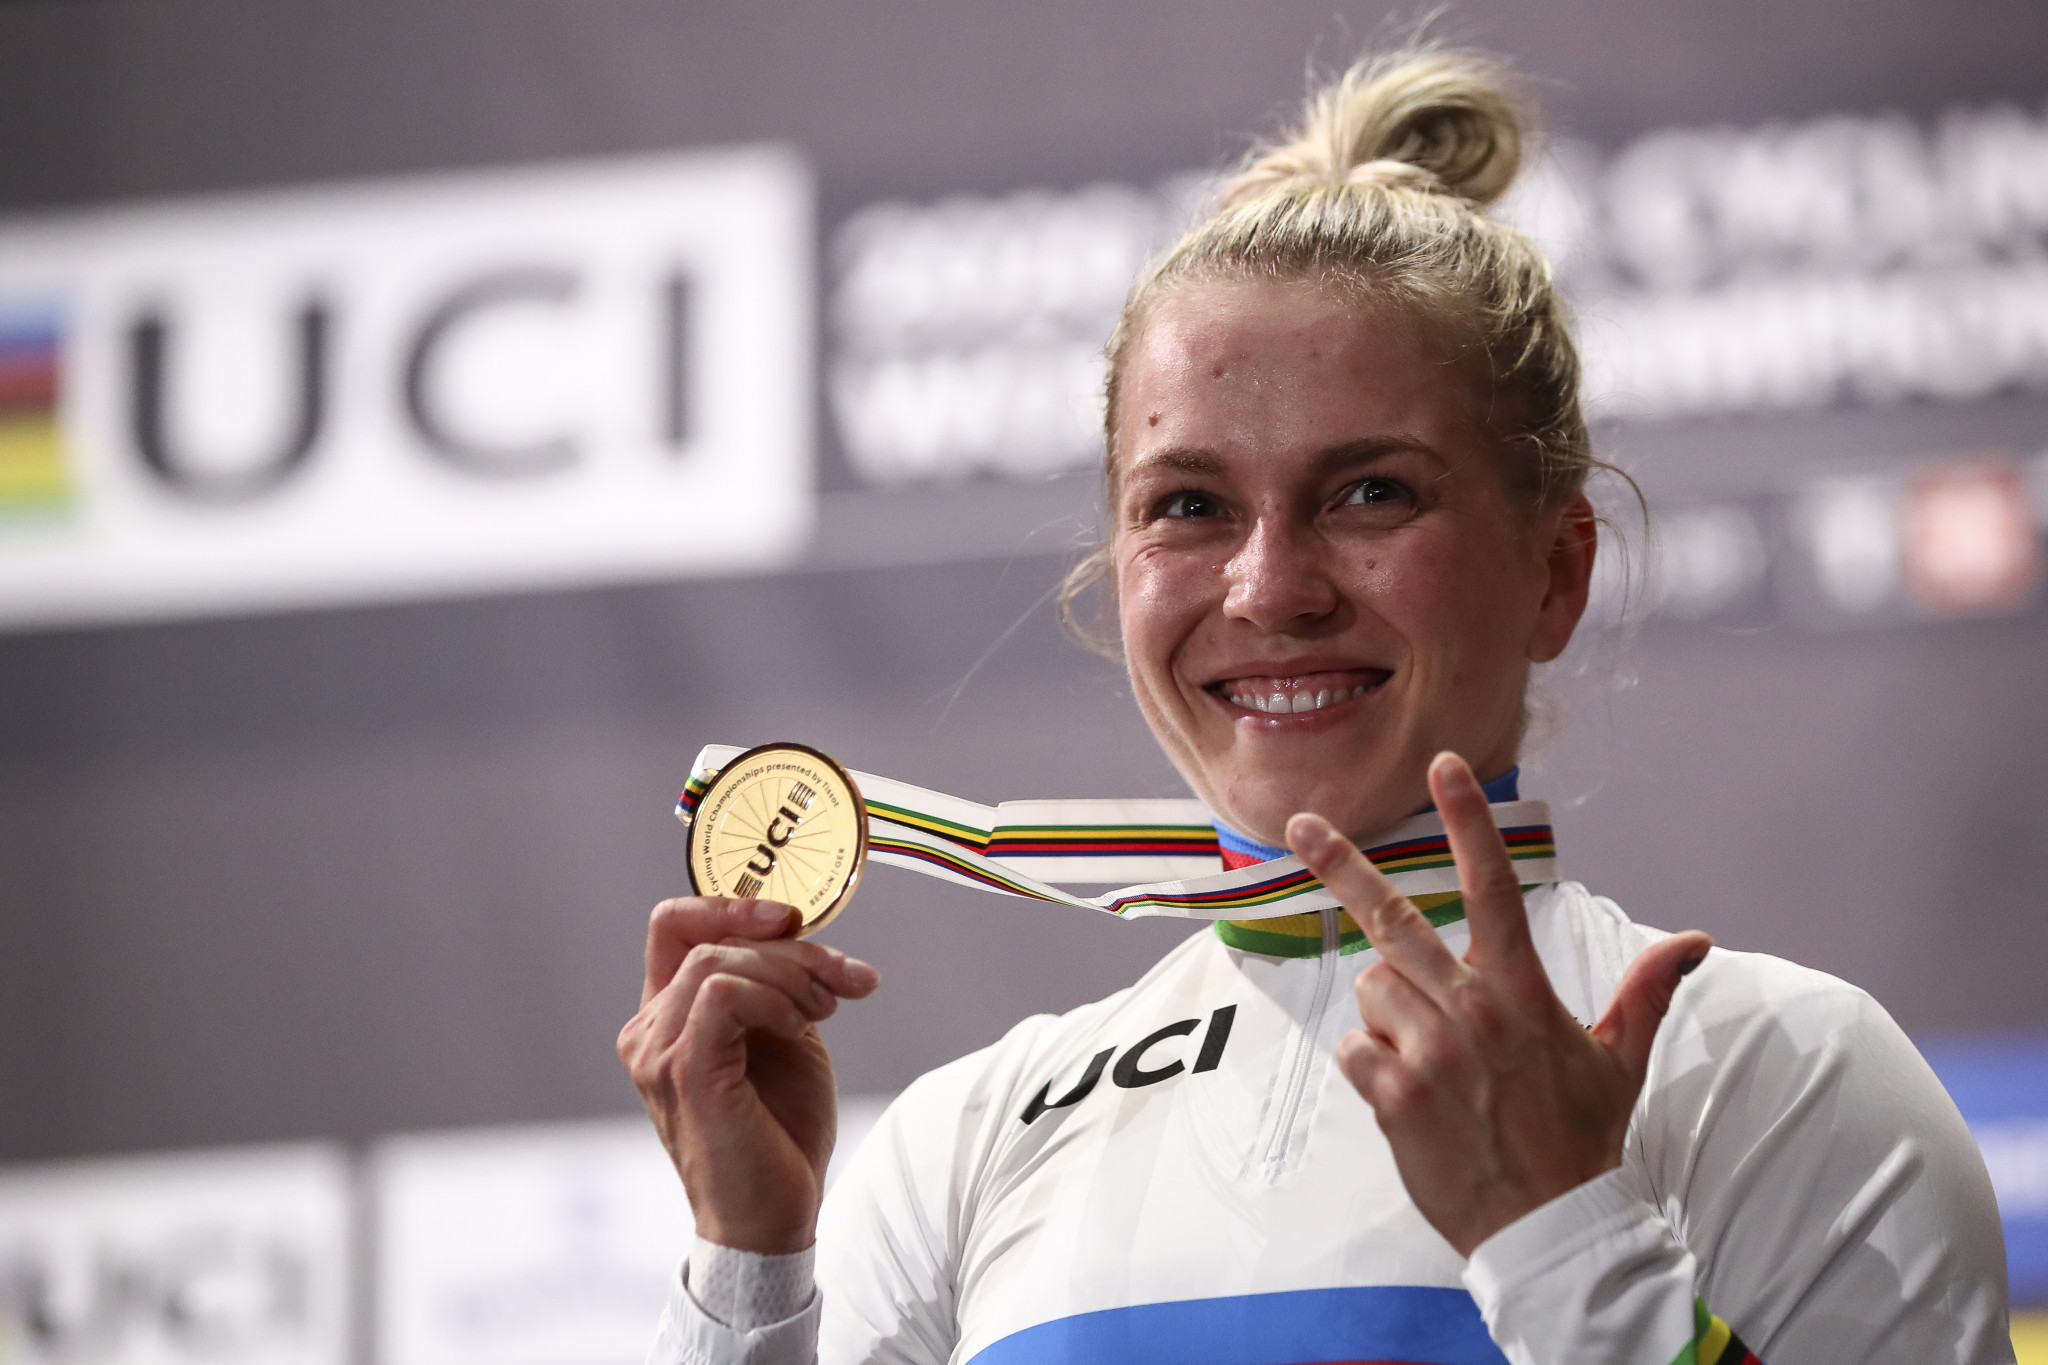 Emma Hinze of Germany won her third gold medal of the World Track Cycling Championships ©Getty Images